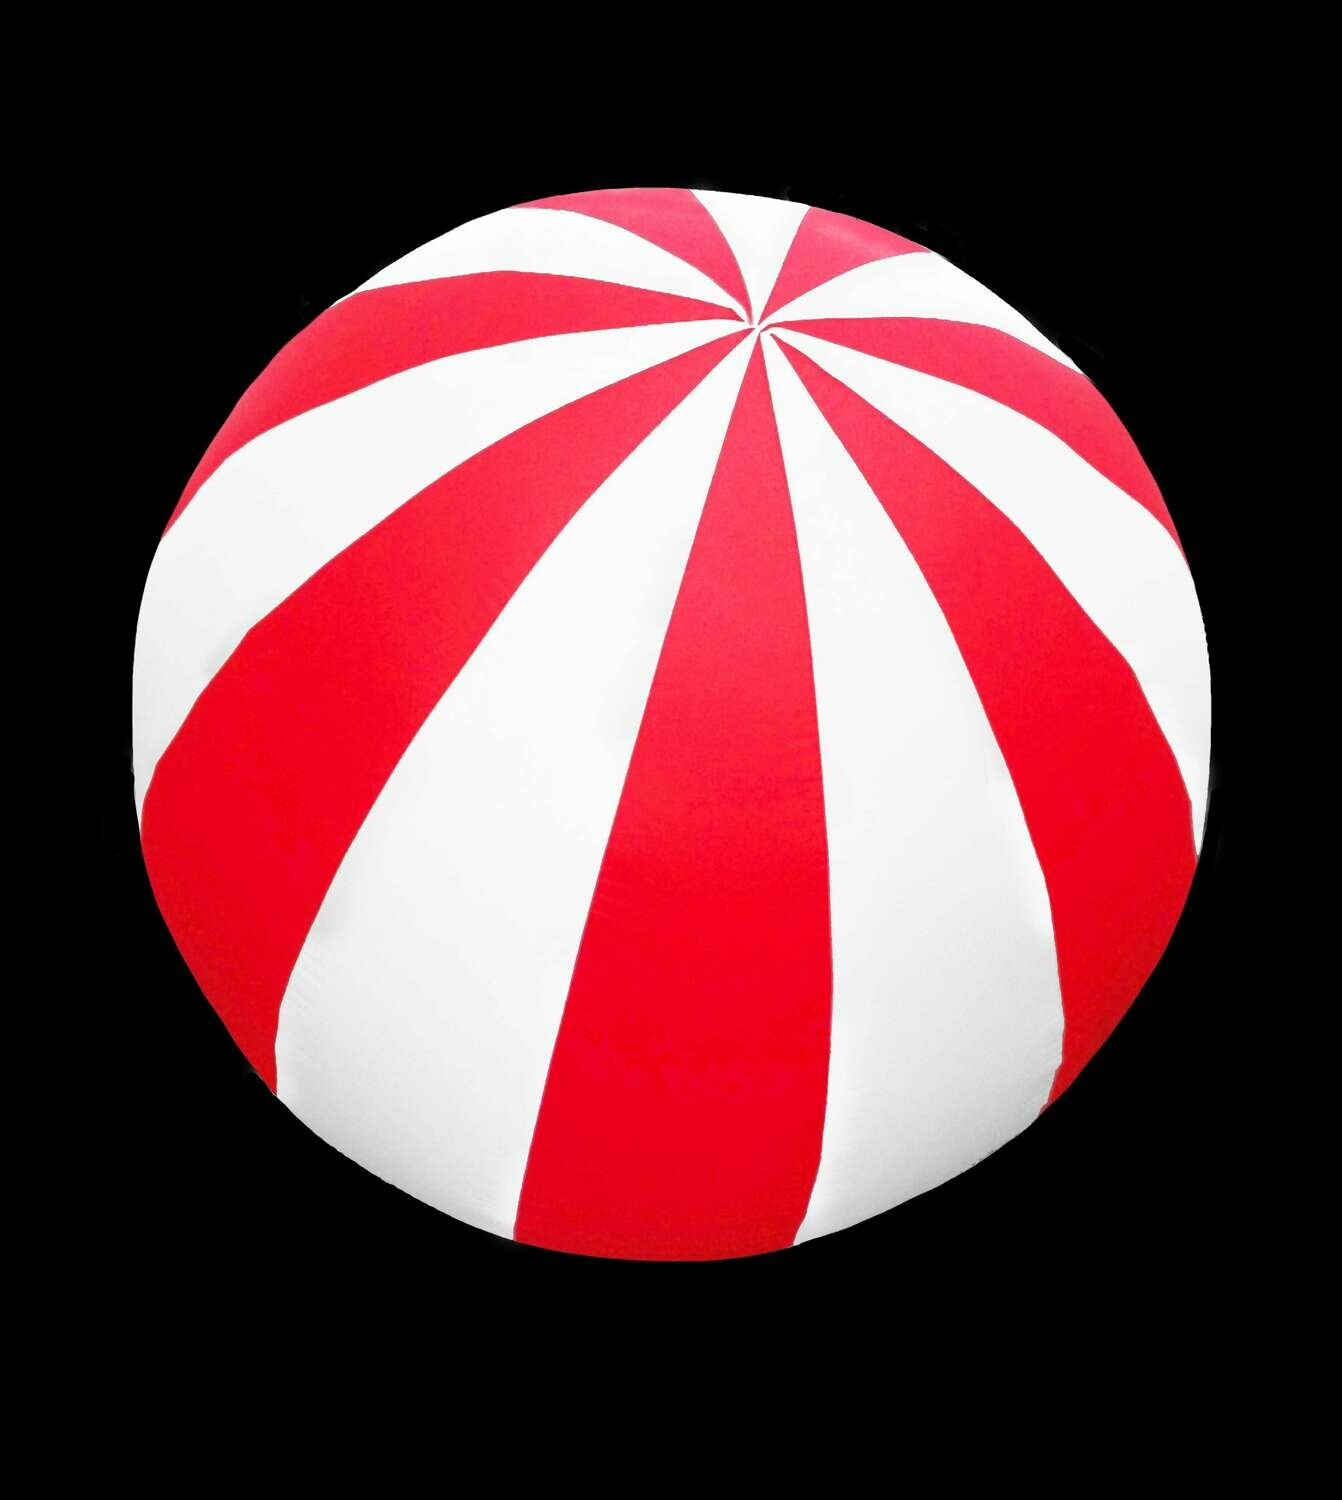 Hanging Inflatable Circus Ball Extra Stripy Spheres 4ft/122cm diameter